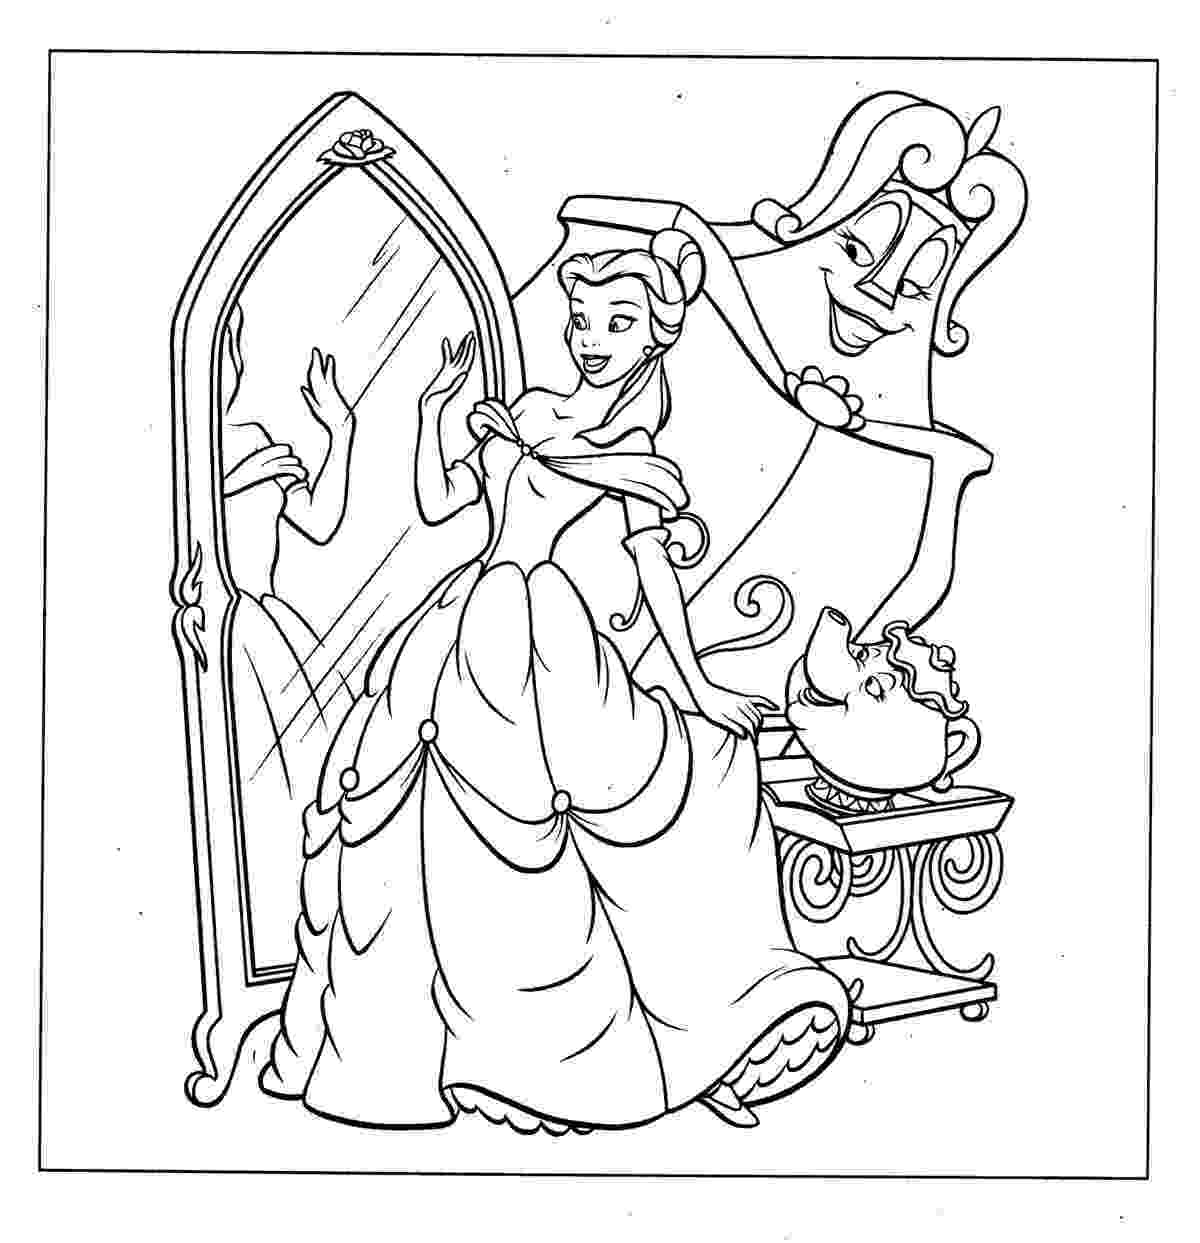 disnep princess coloring pages printable 1000 images about sleeping beauty on pinterest pages princess coloring disnep printable